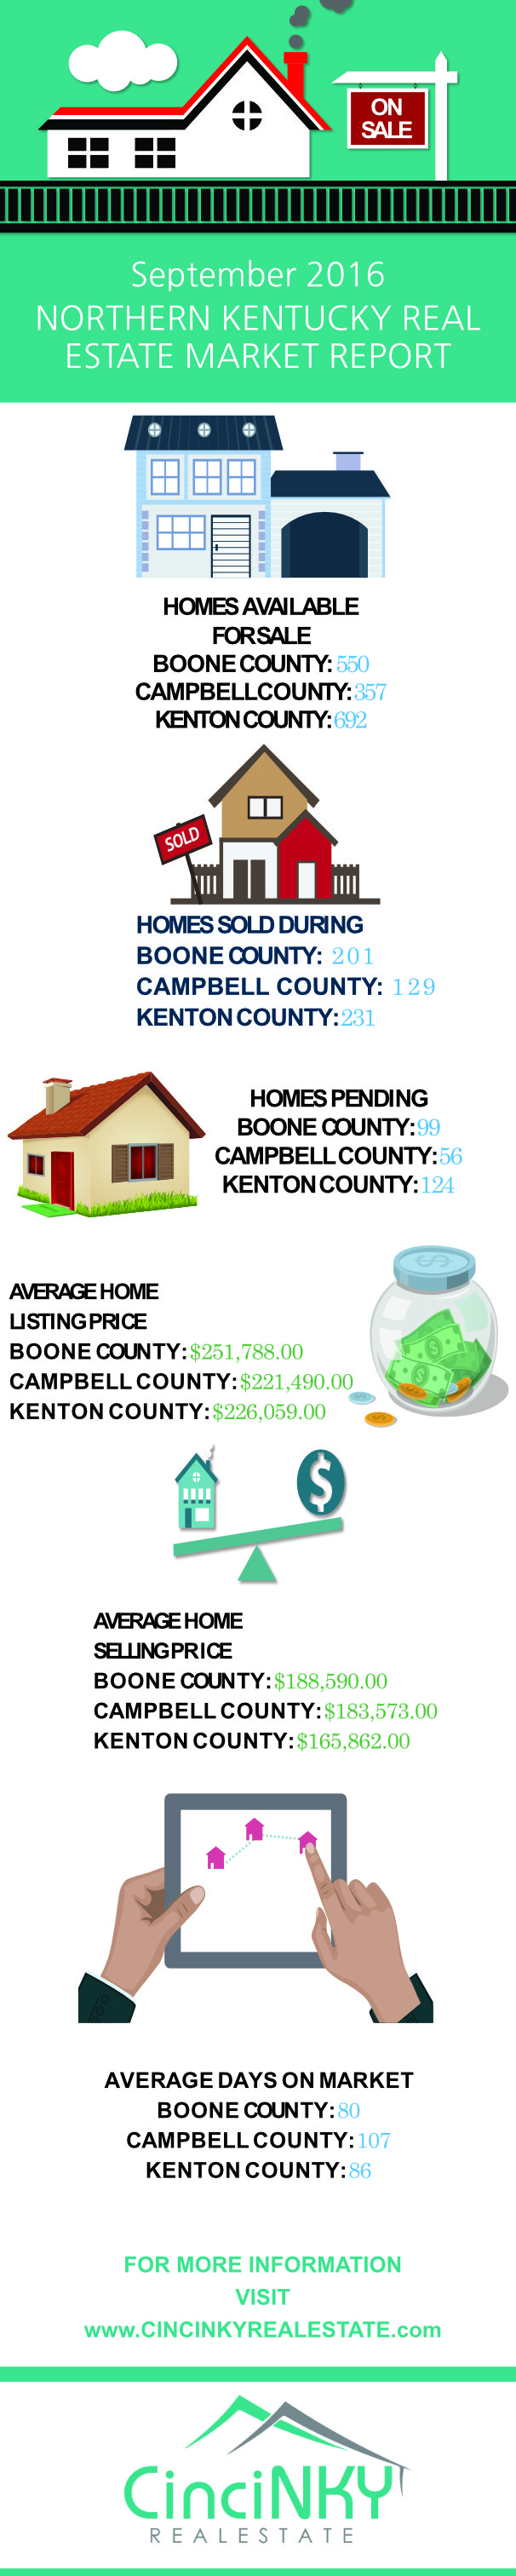 September 2016 Northern Kentucky Real Estate Market Report Infographic